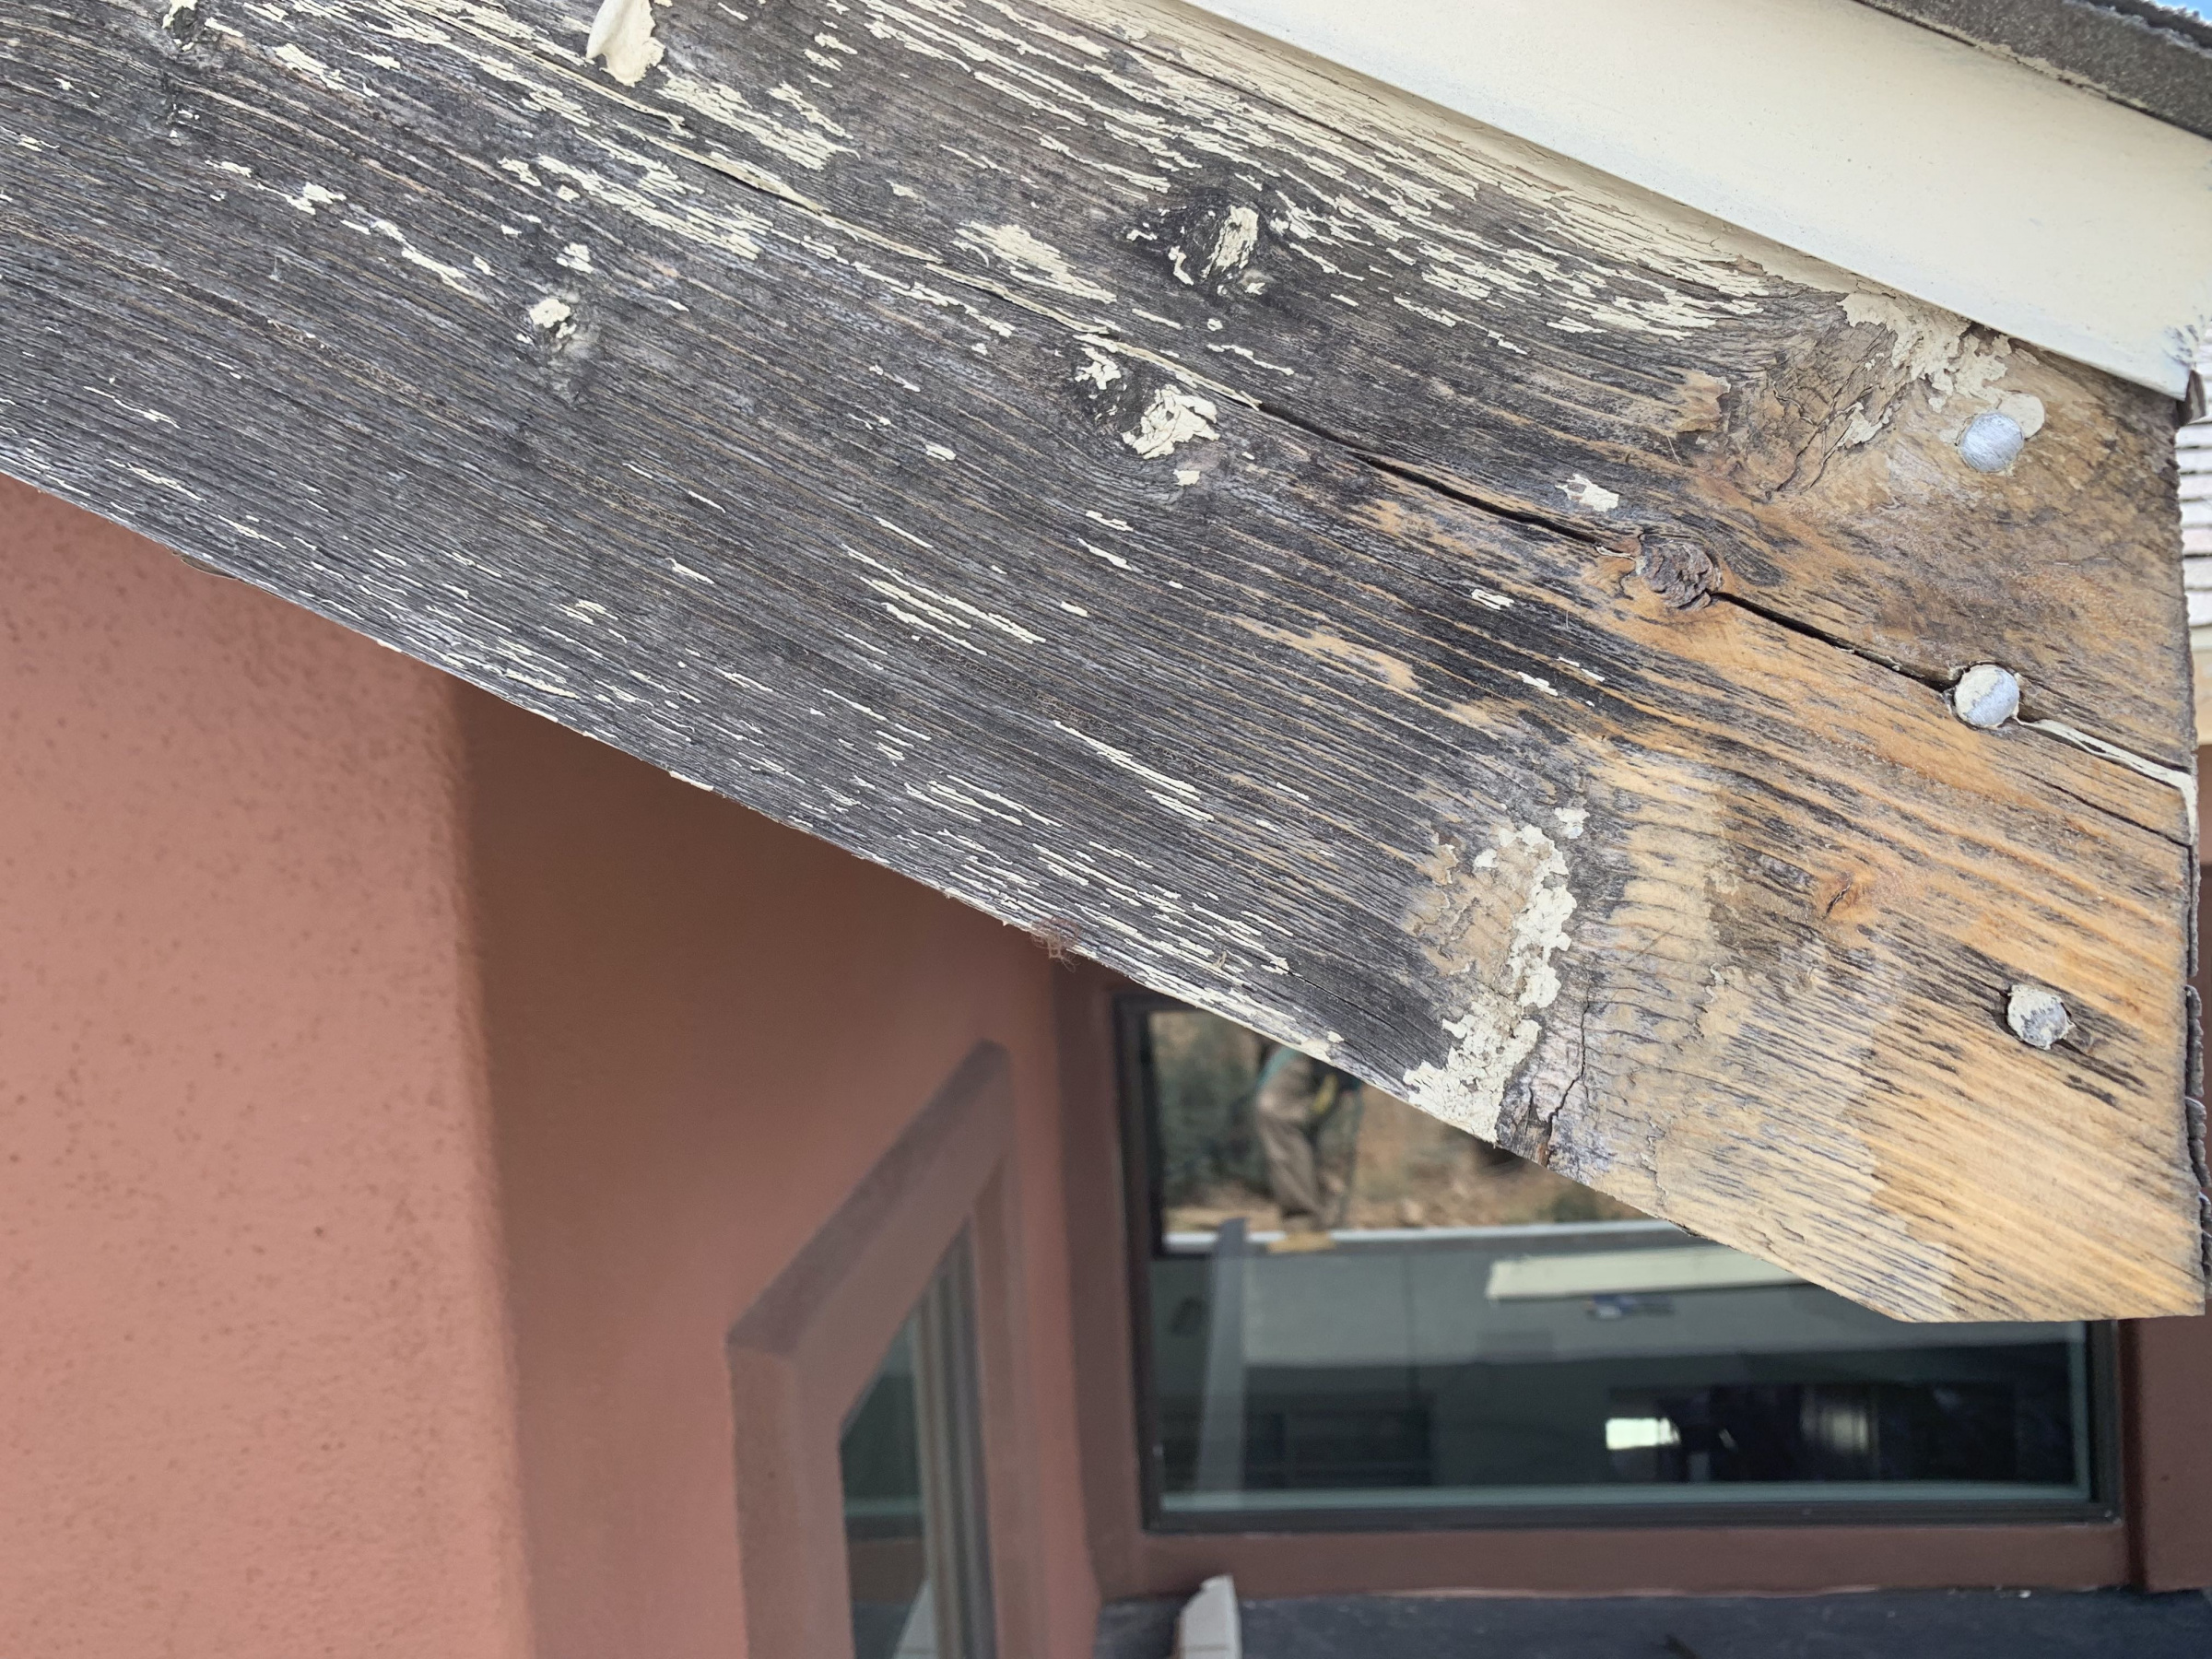 Wood Fascia: Replace Or Not To Replace - Roofing/Siding